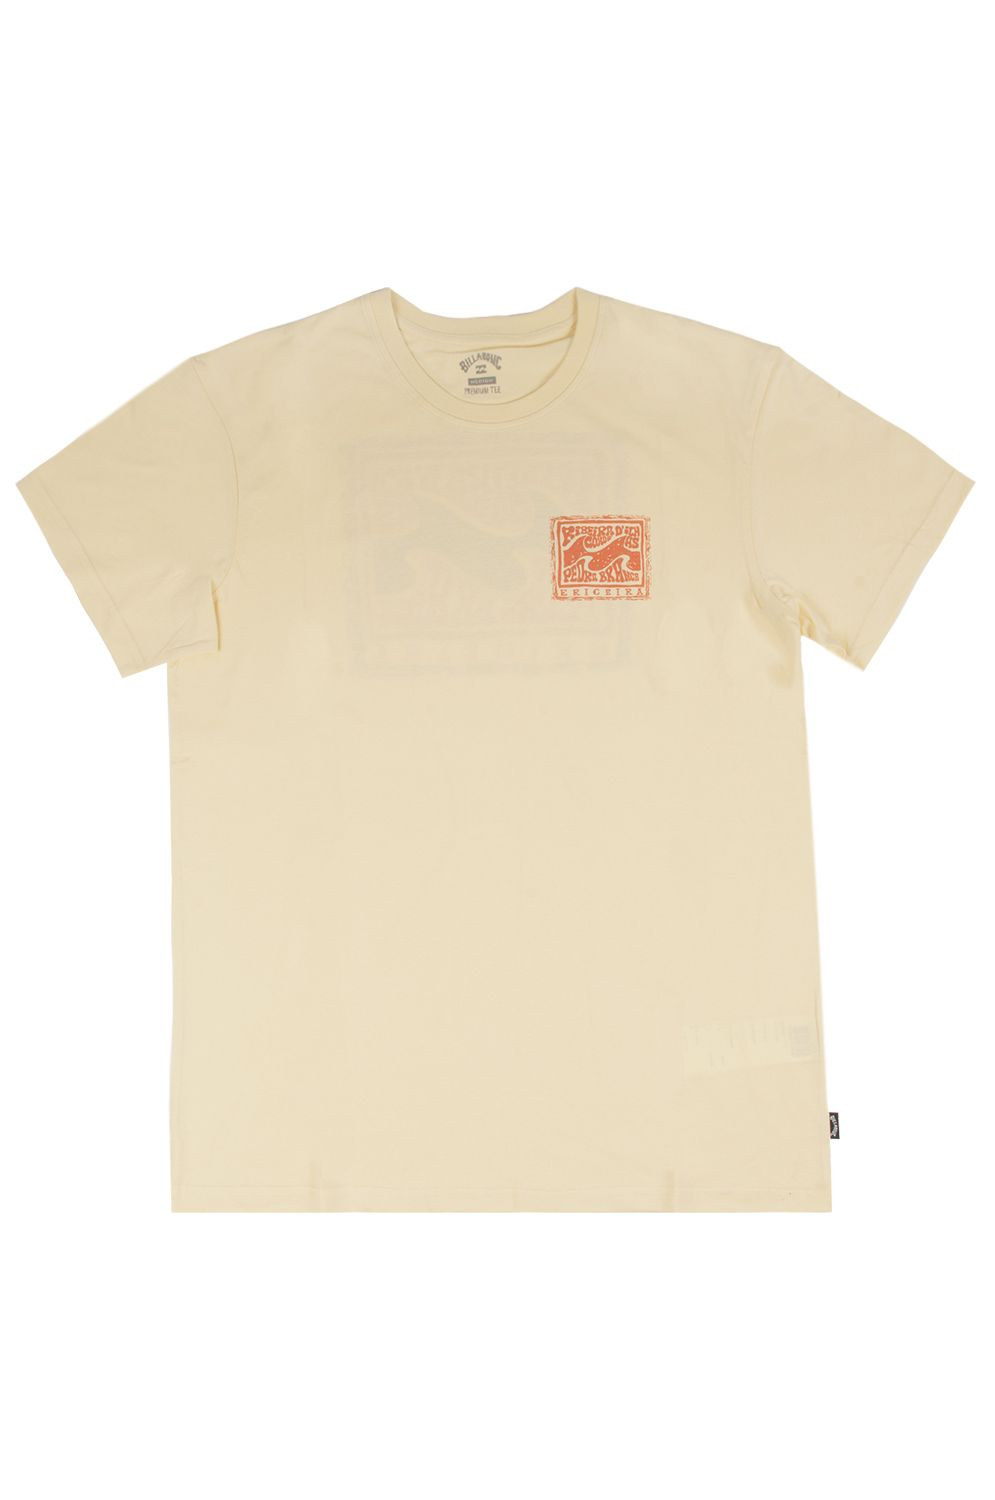 T-Shirt Billabong ERICEIRA SPOTS DESTINATION Mellow Yellow